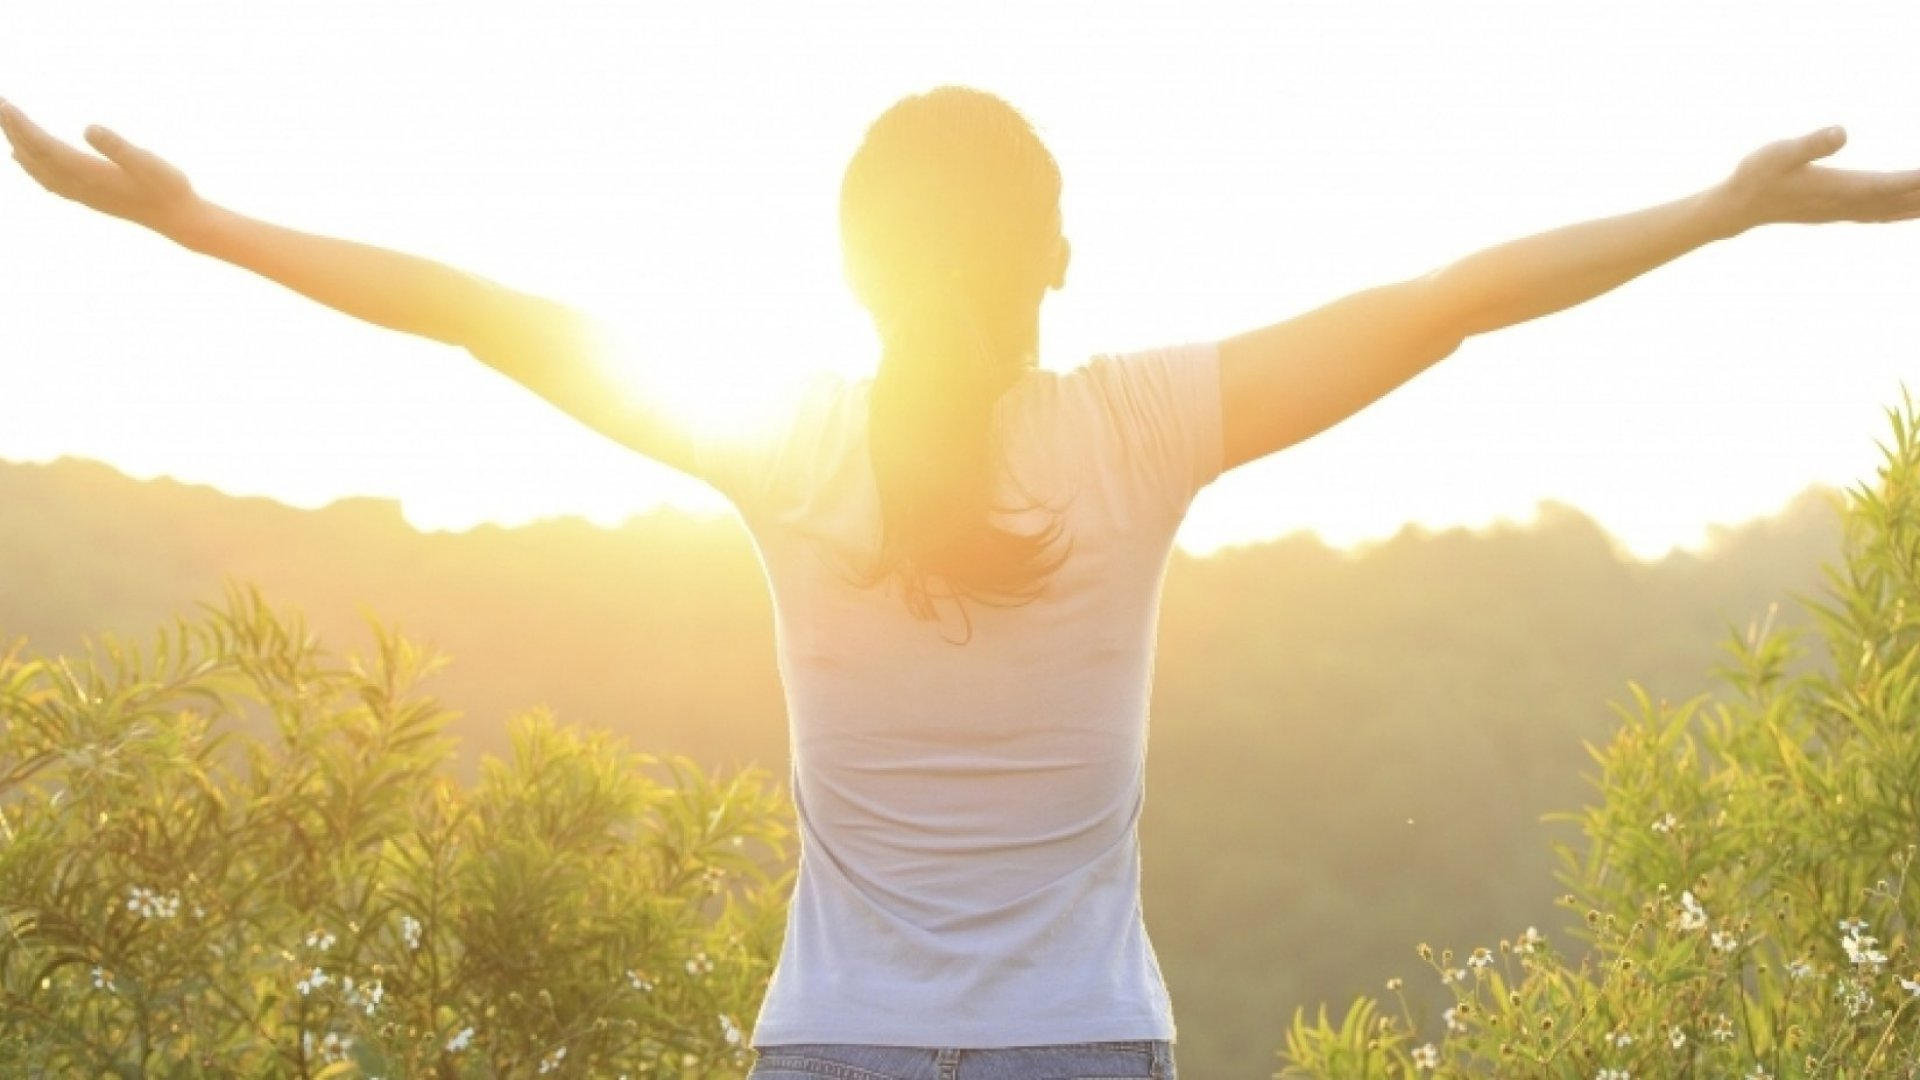 10 Daily Habits for Living a Better Life With Fewer Regrets